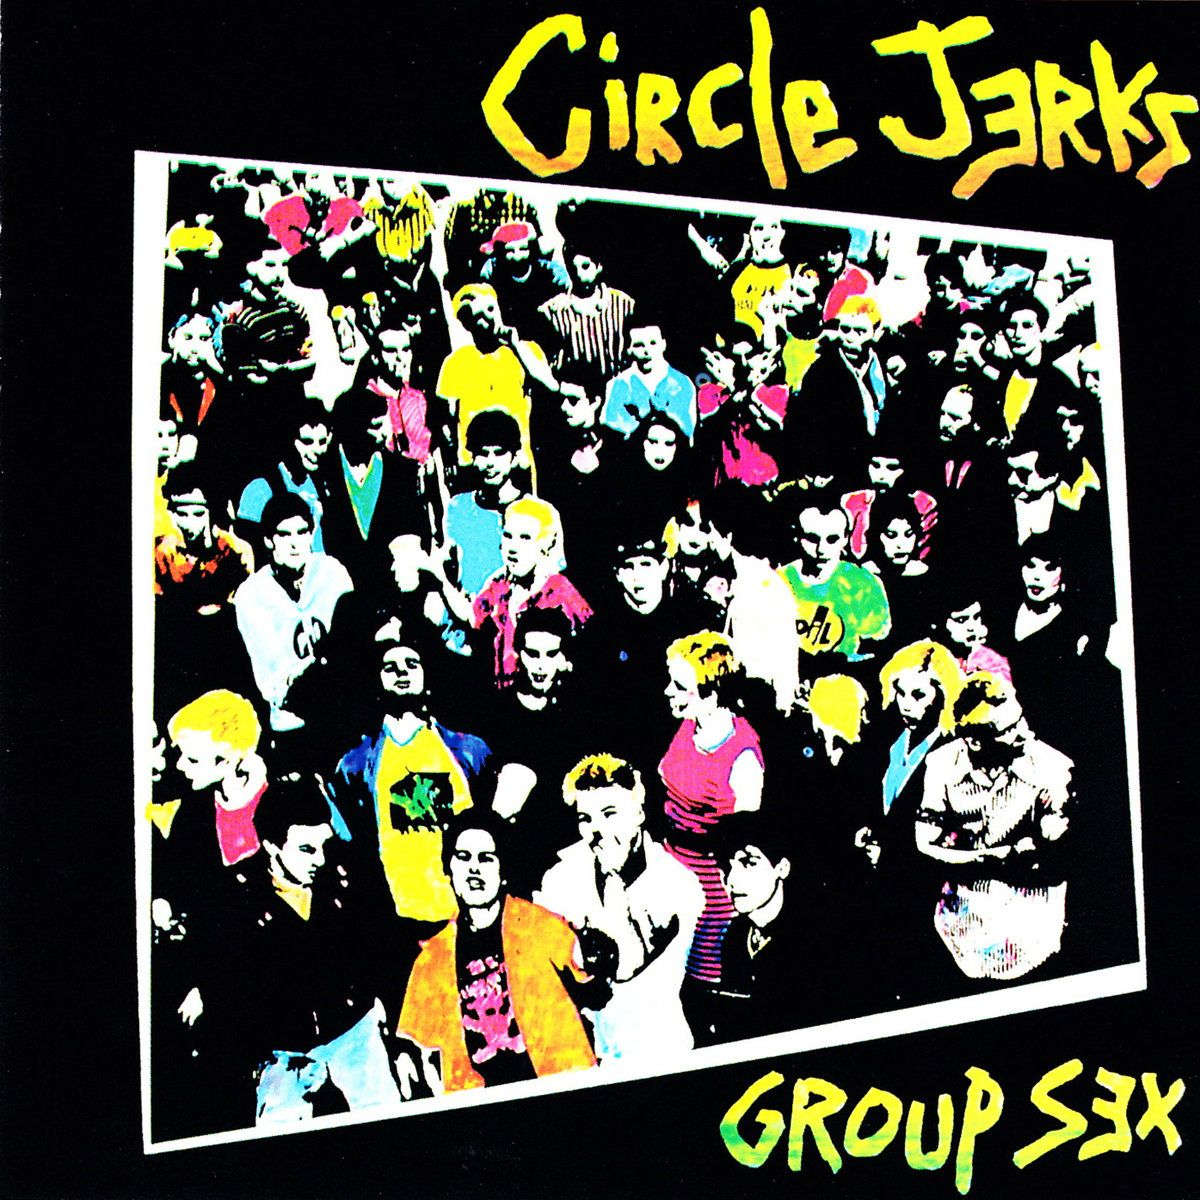 Circle Jerks Reuniting For 40th Anniversary Tour em 2020